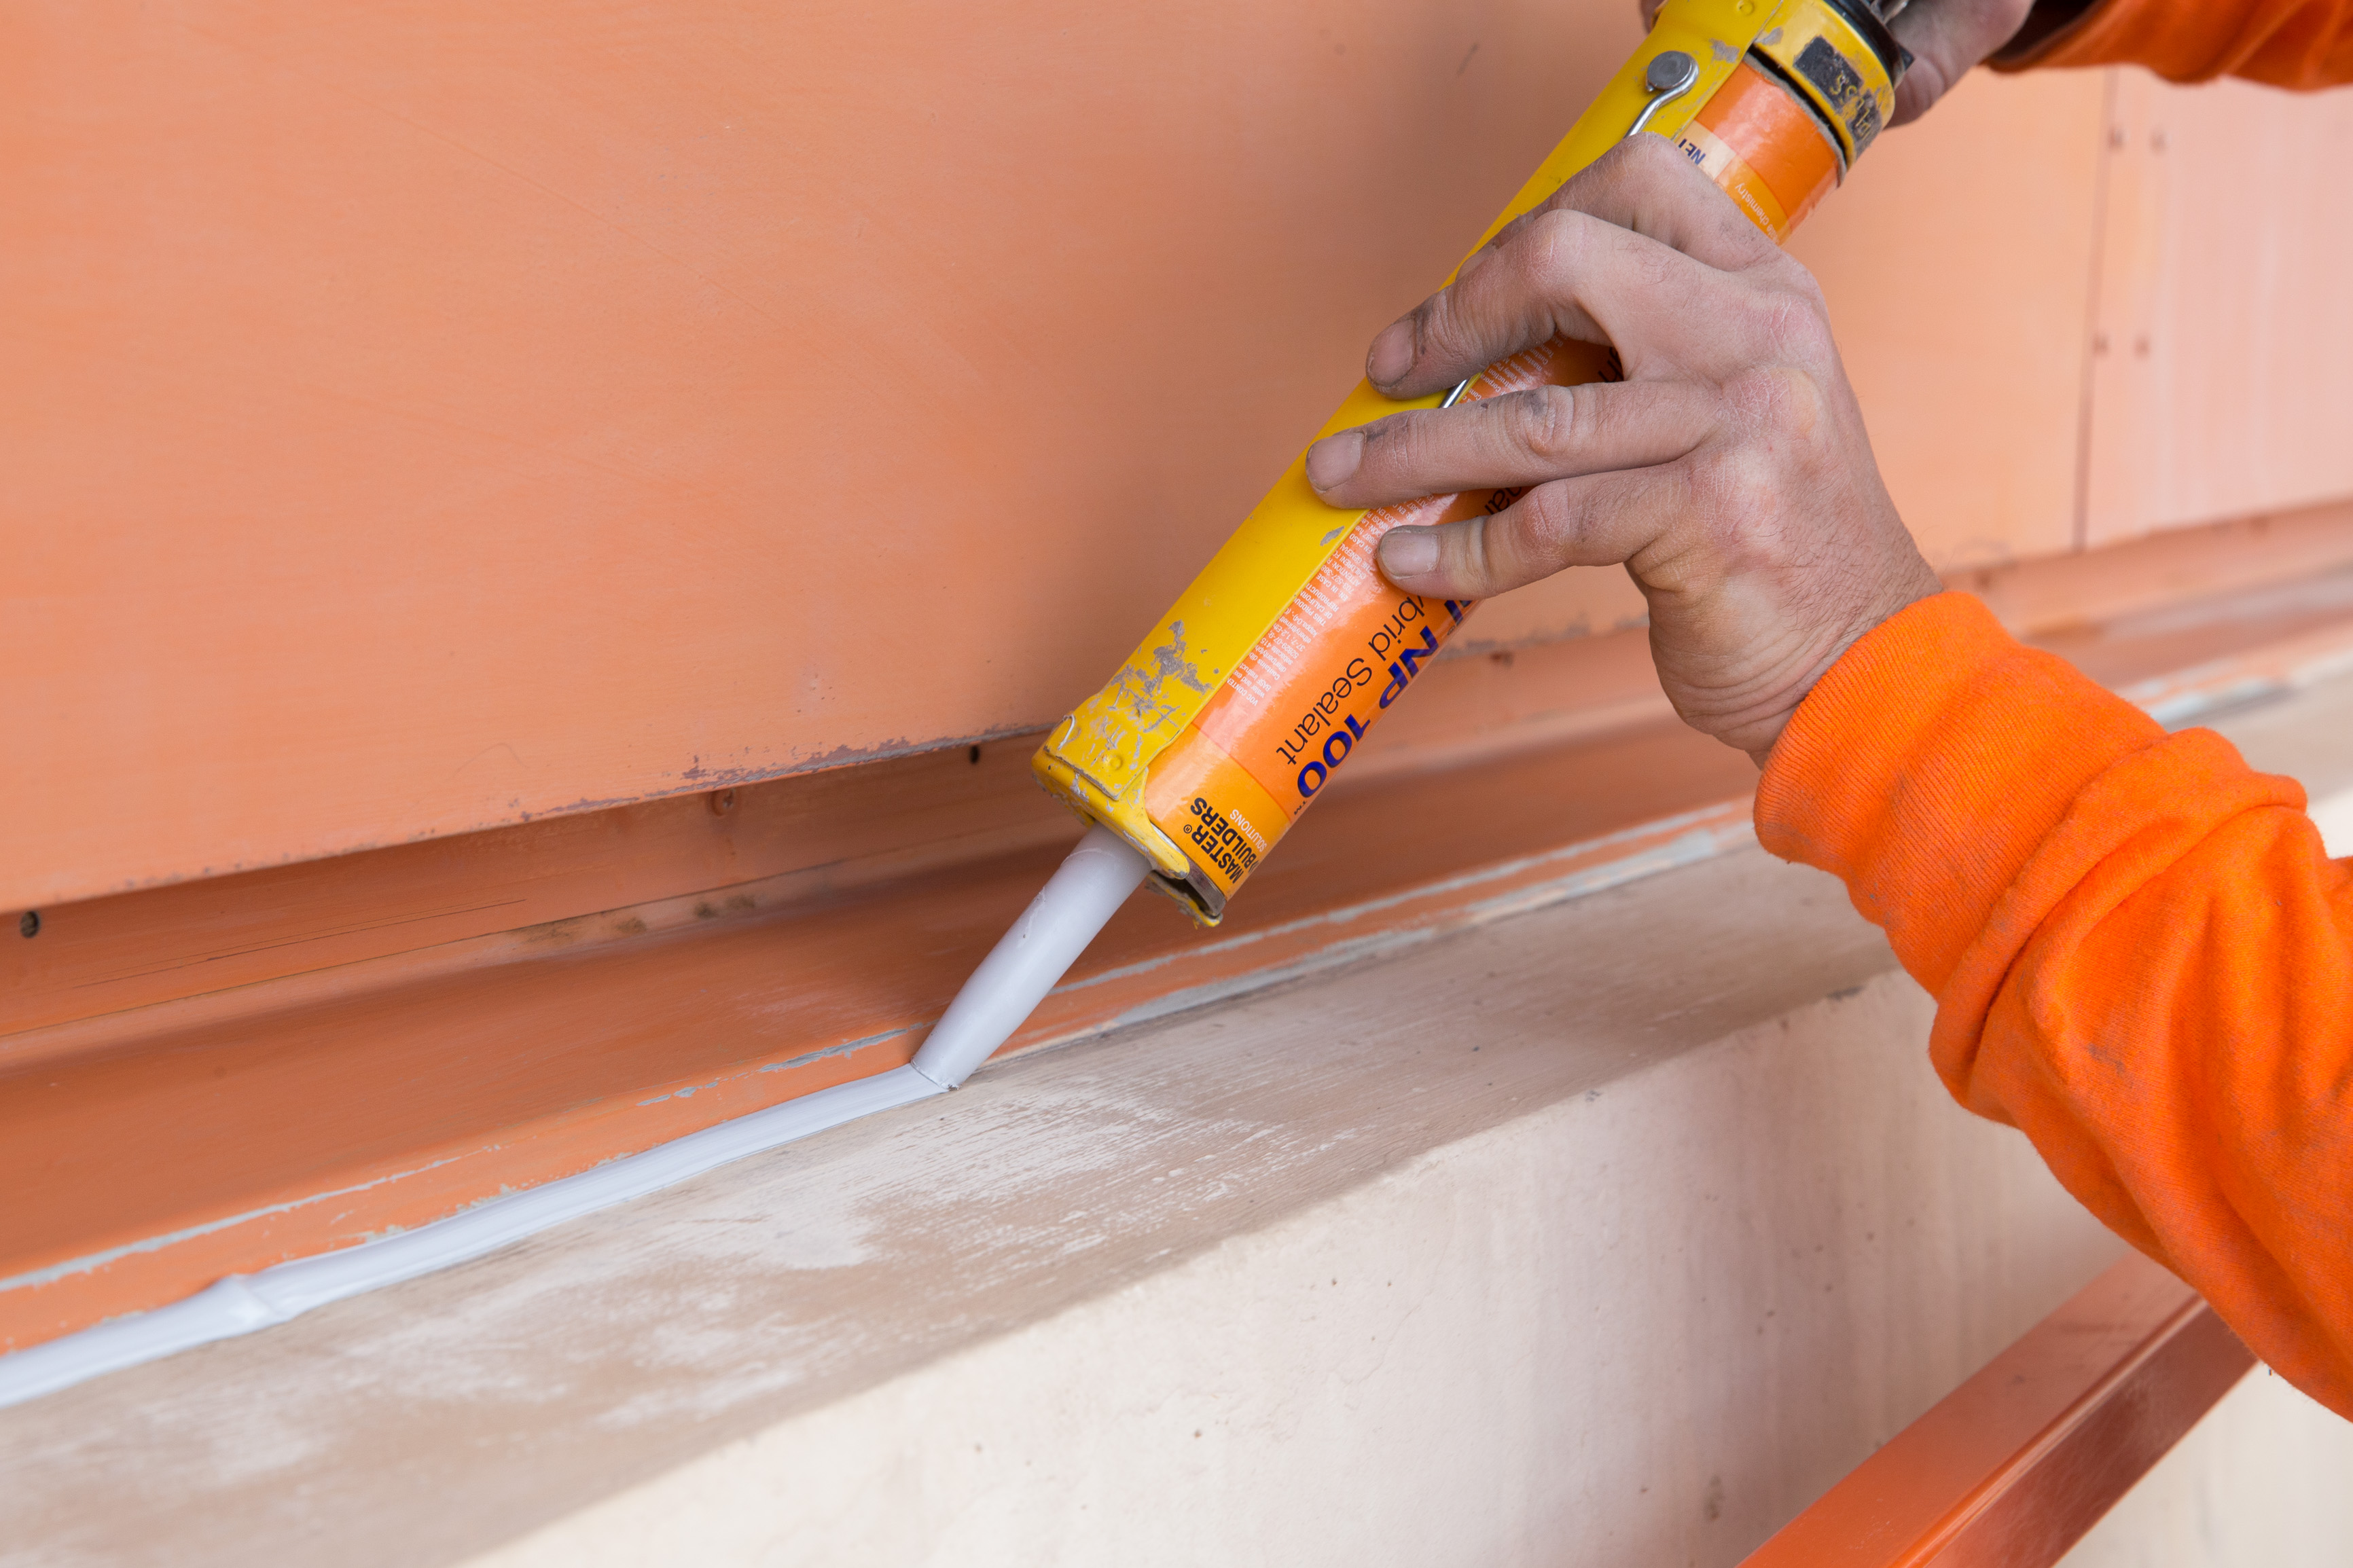 Construction sealant being used to fill an exterior joint.